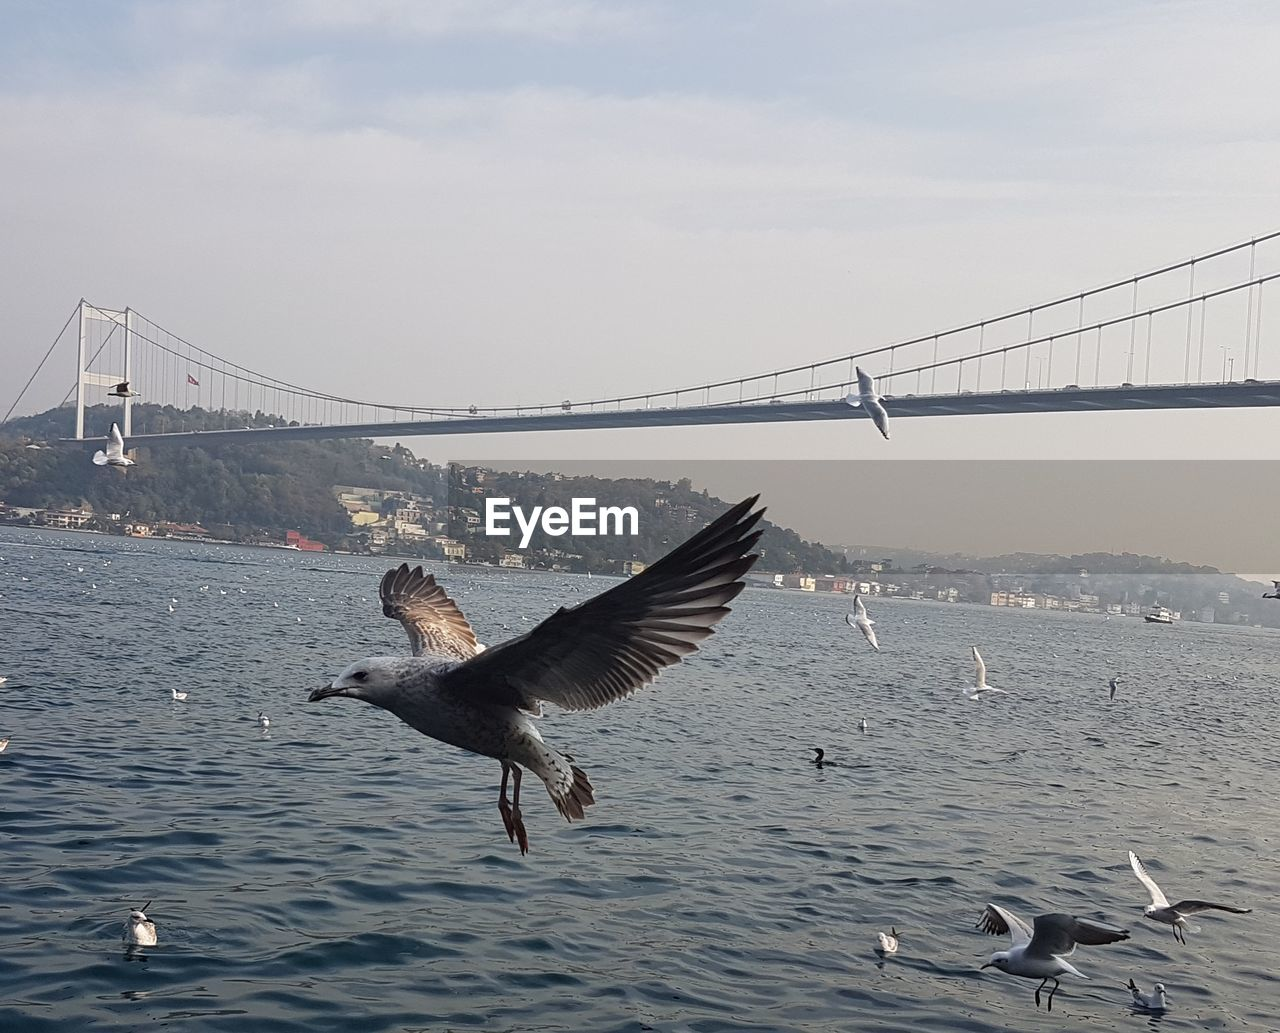 water, bird, flying, animal themes, vertebrate, animals in the wild, animal, sky, animal wildlife, bridge - man made structure, bridge, built structure, spread wings, architecture, nature, connection, suspension bridge, sea, group of animals, no people, seagull, outdoors, bay